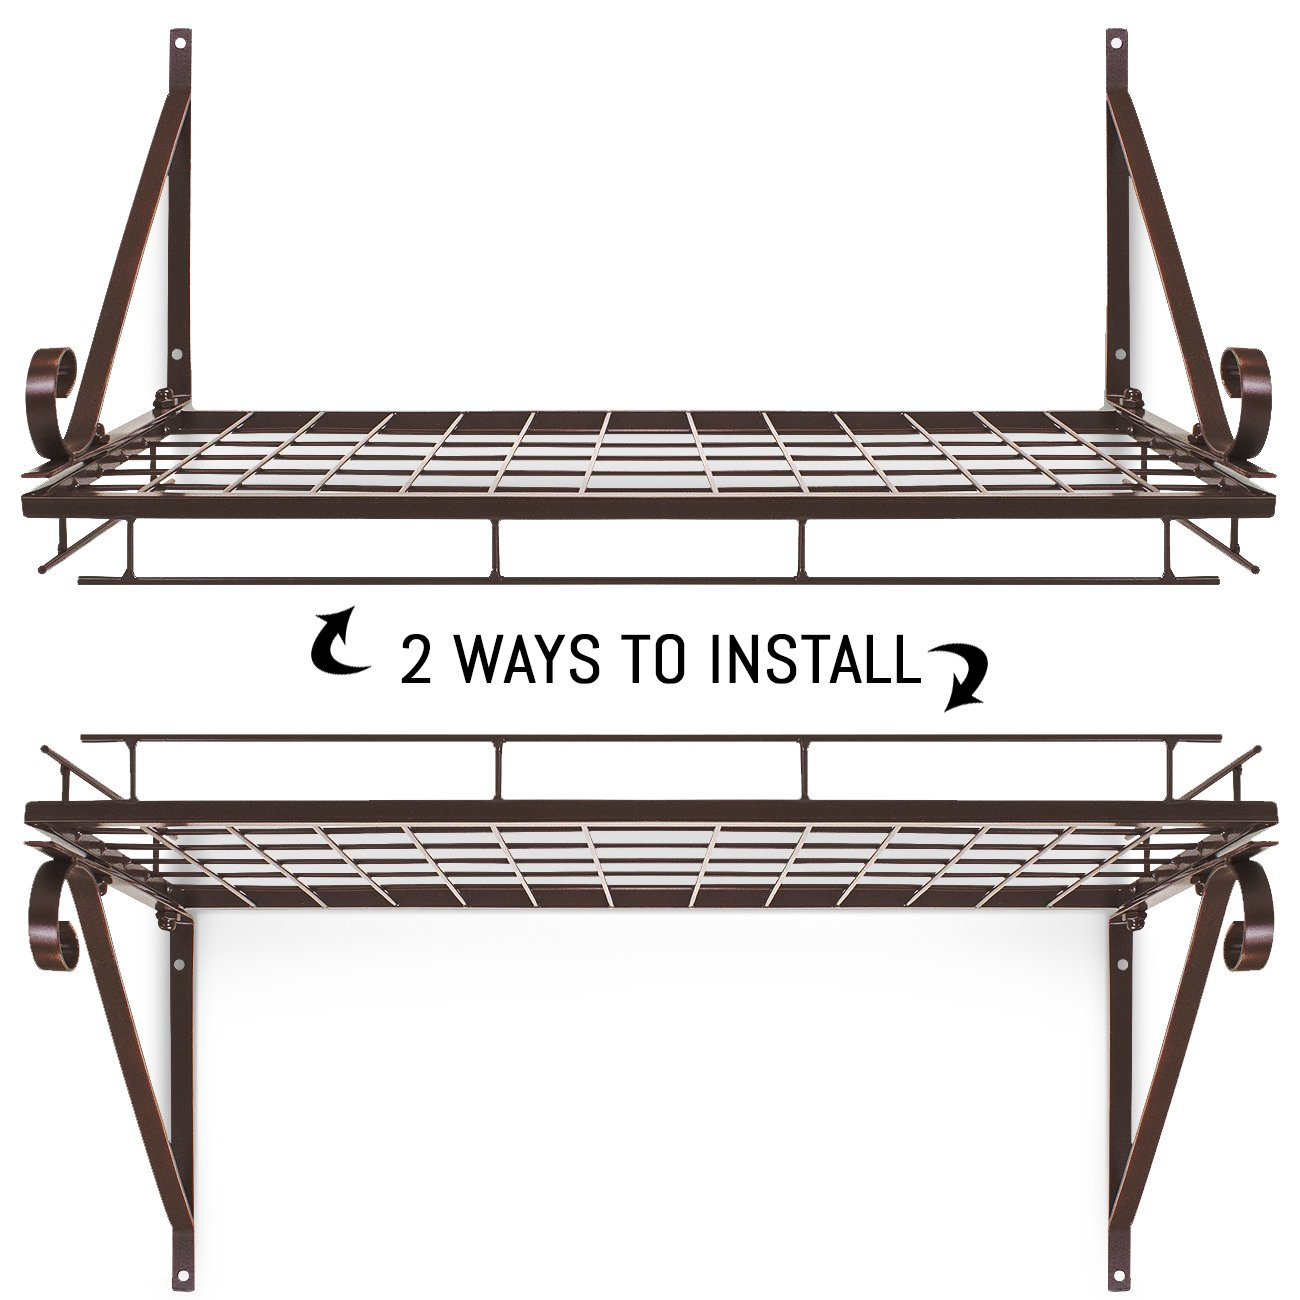 Sorbus Pots and Pan Rack — Decorative Wall Mounted Storage Hanging Rack — Multipurpose Wrought-Iron shelf Organizer for Kitchen Cookware, Utensils, Pans, Books, Bathroom (Wall Rack - Bronze) by Sorbus (Image #4)